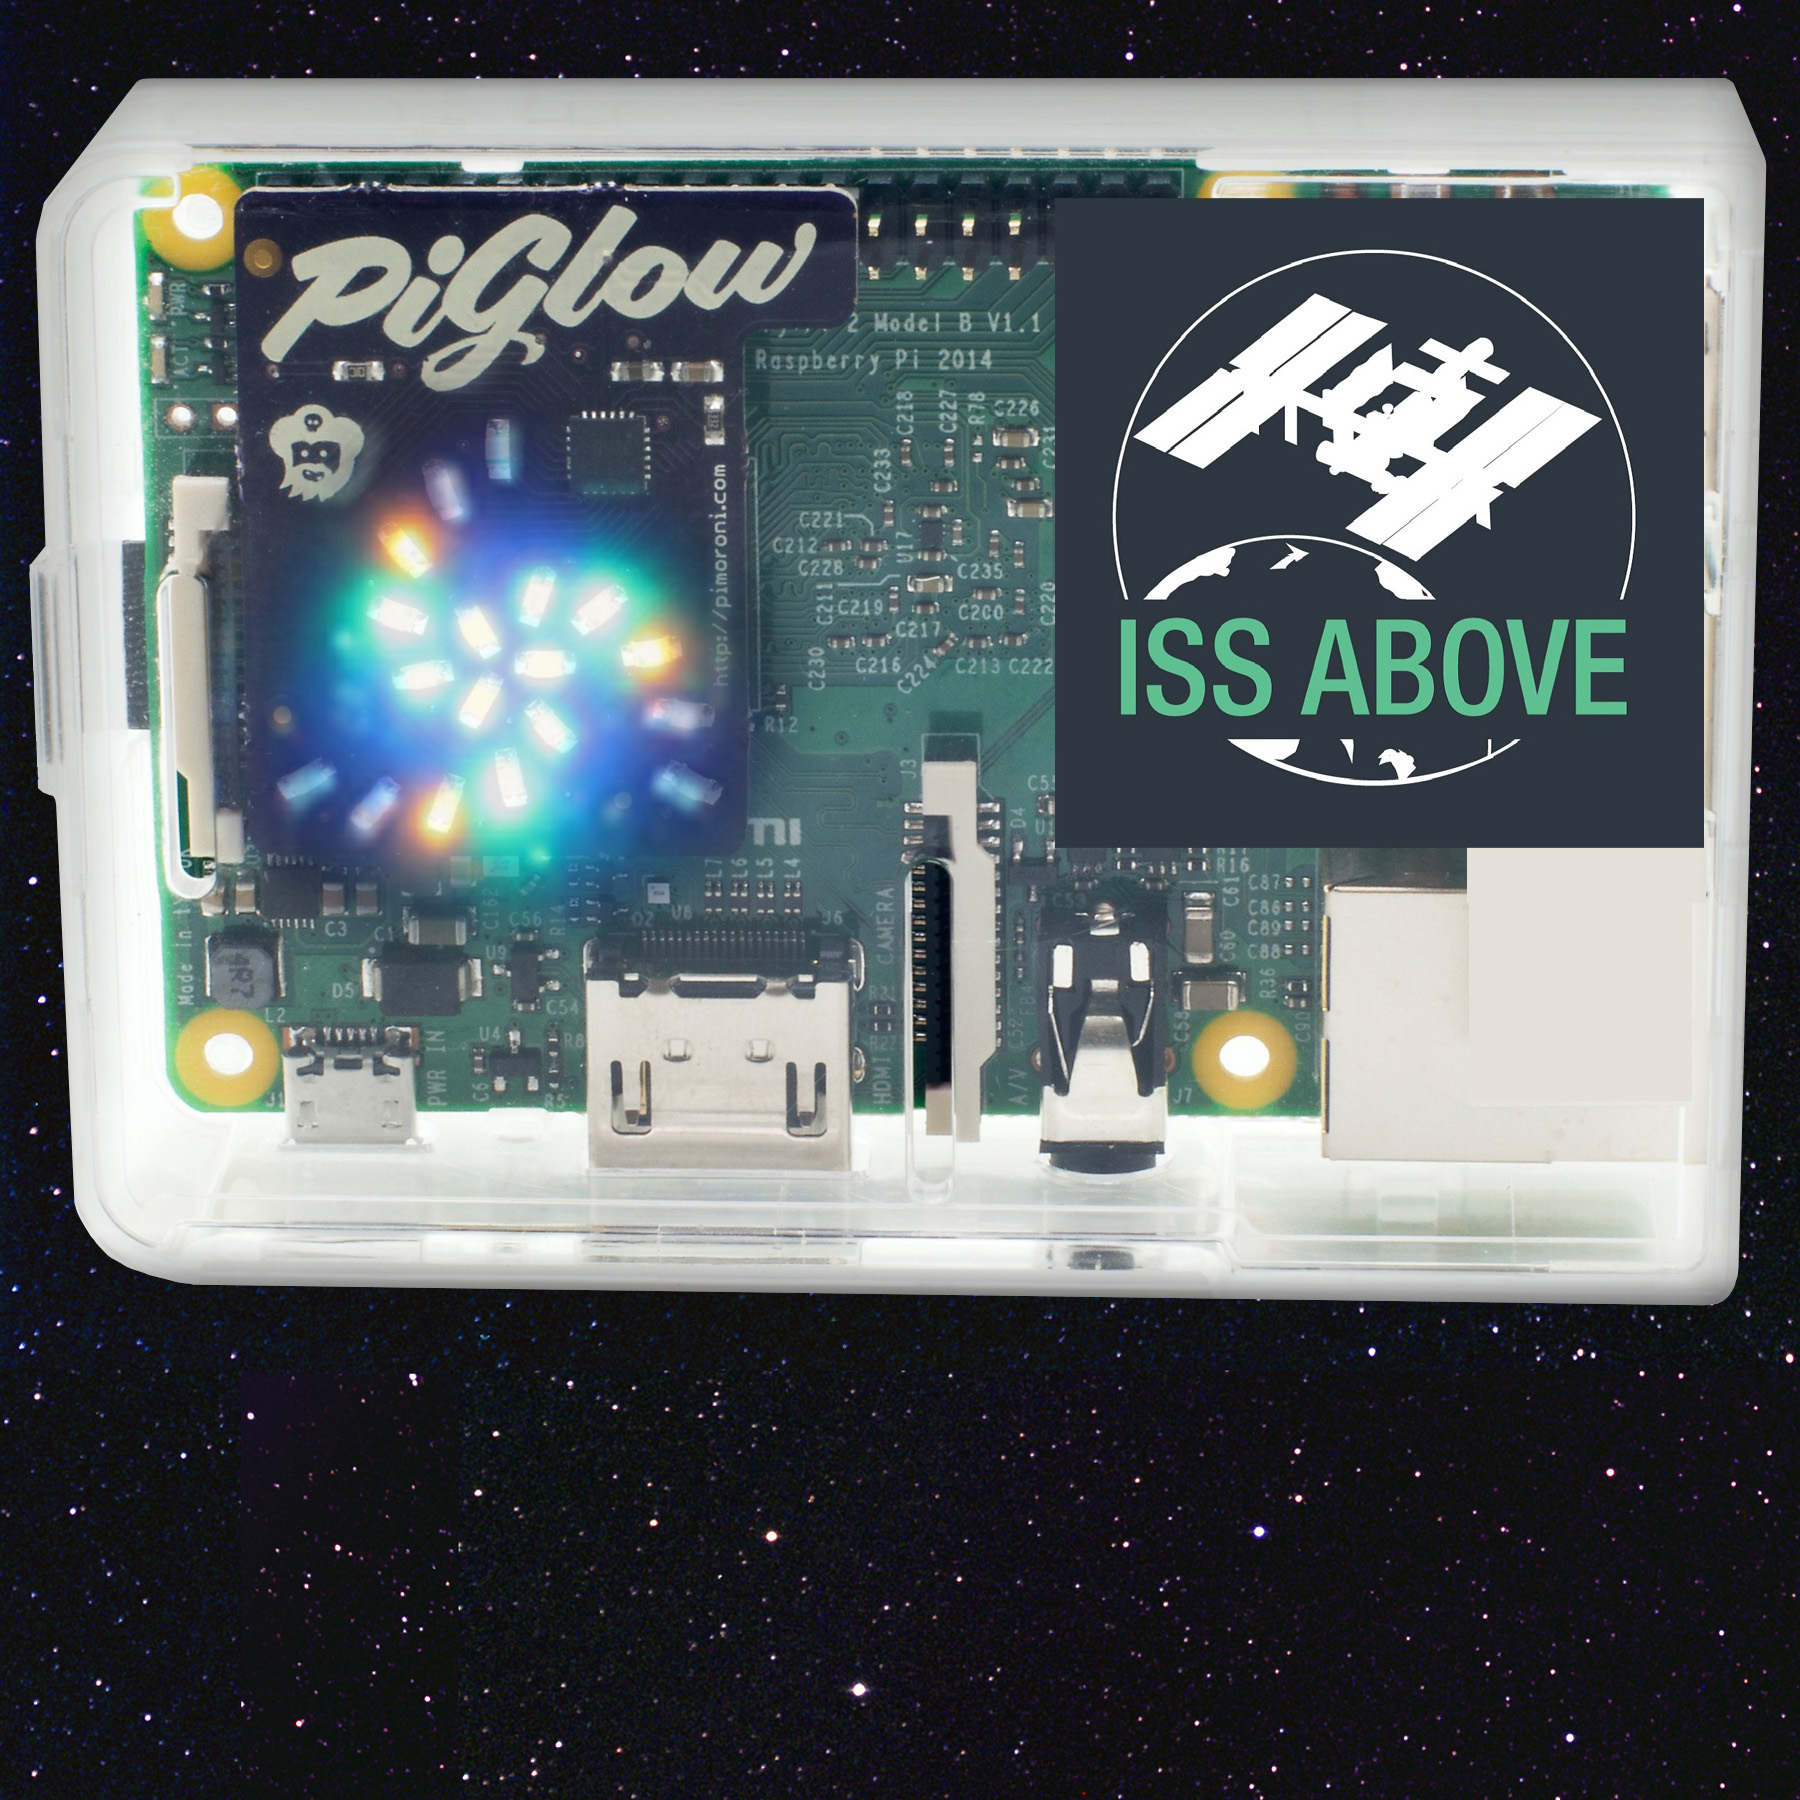 iss above unit glow in square